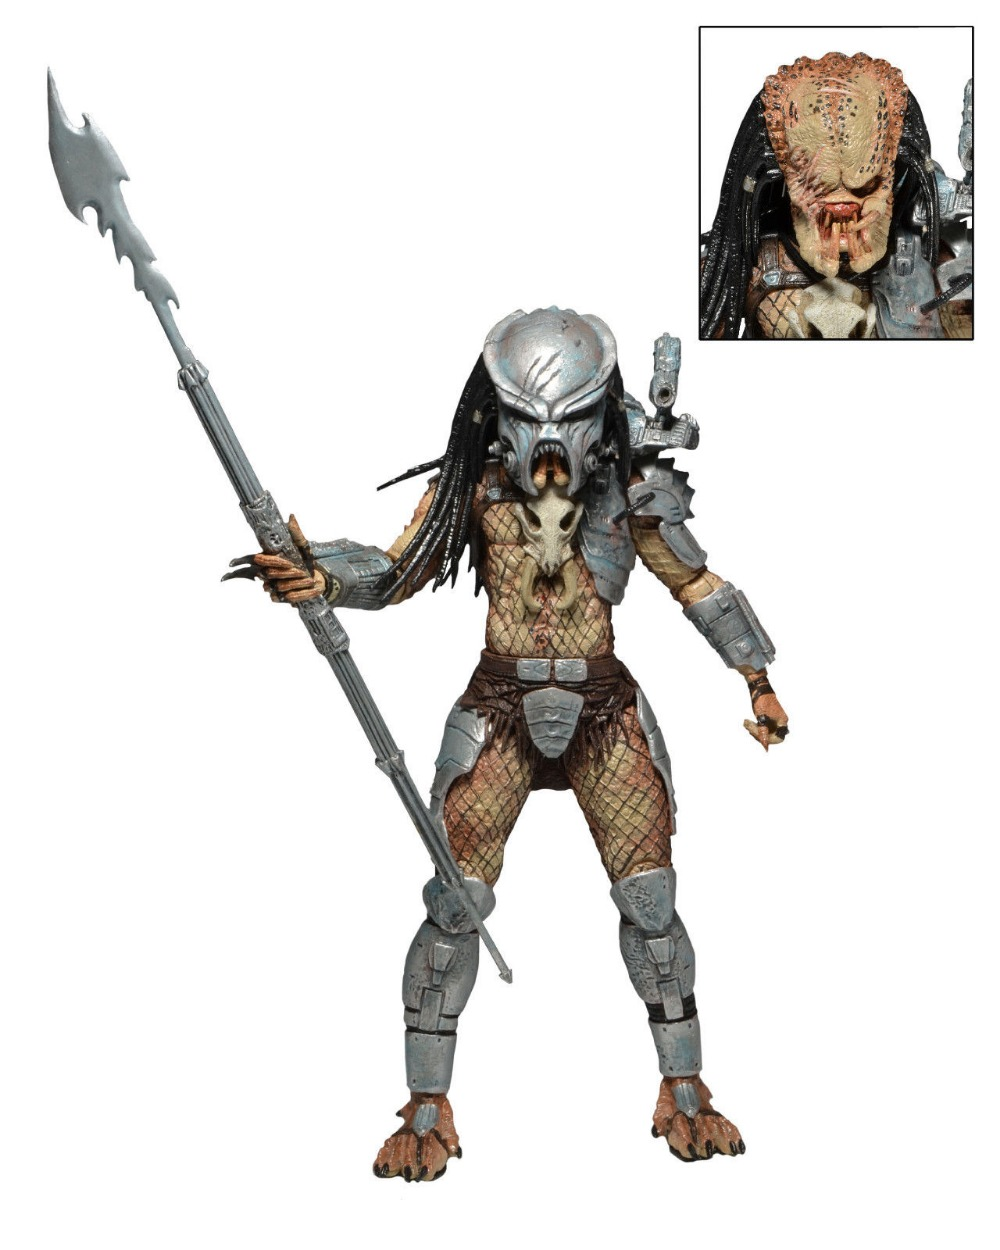 88840cad93d1 US $41.0 |NECA Movie Predator VS Alien Science Monster Rare Ahab Predator  Predator Toys Action figure Model-in Action & Toy Figures from Toys & ...